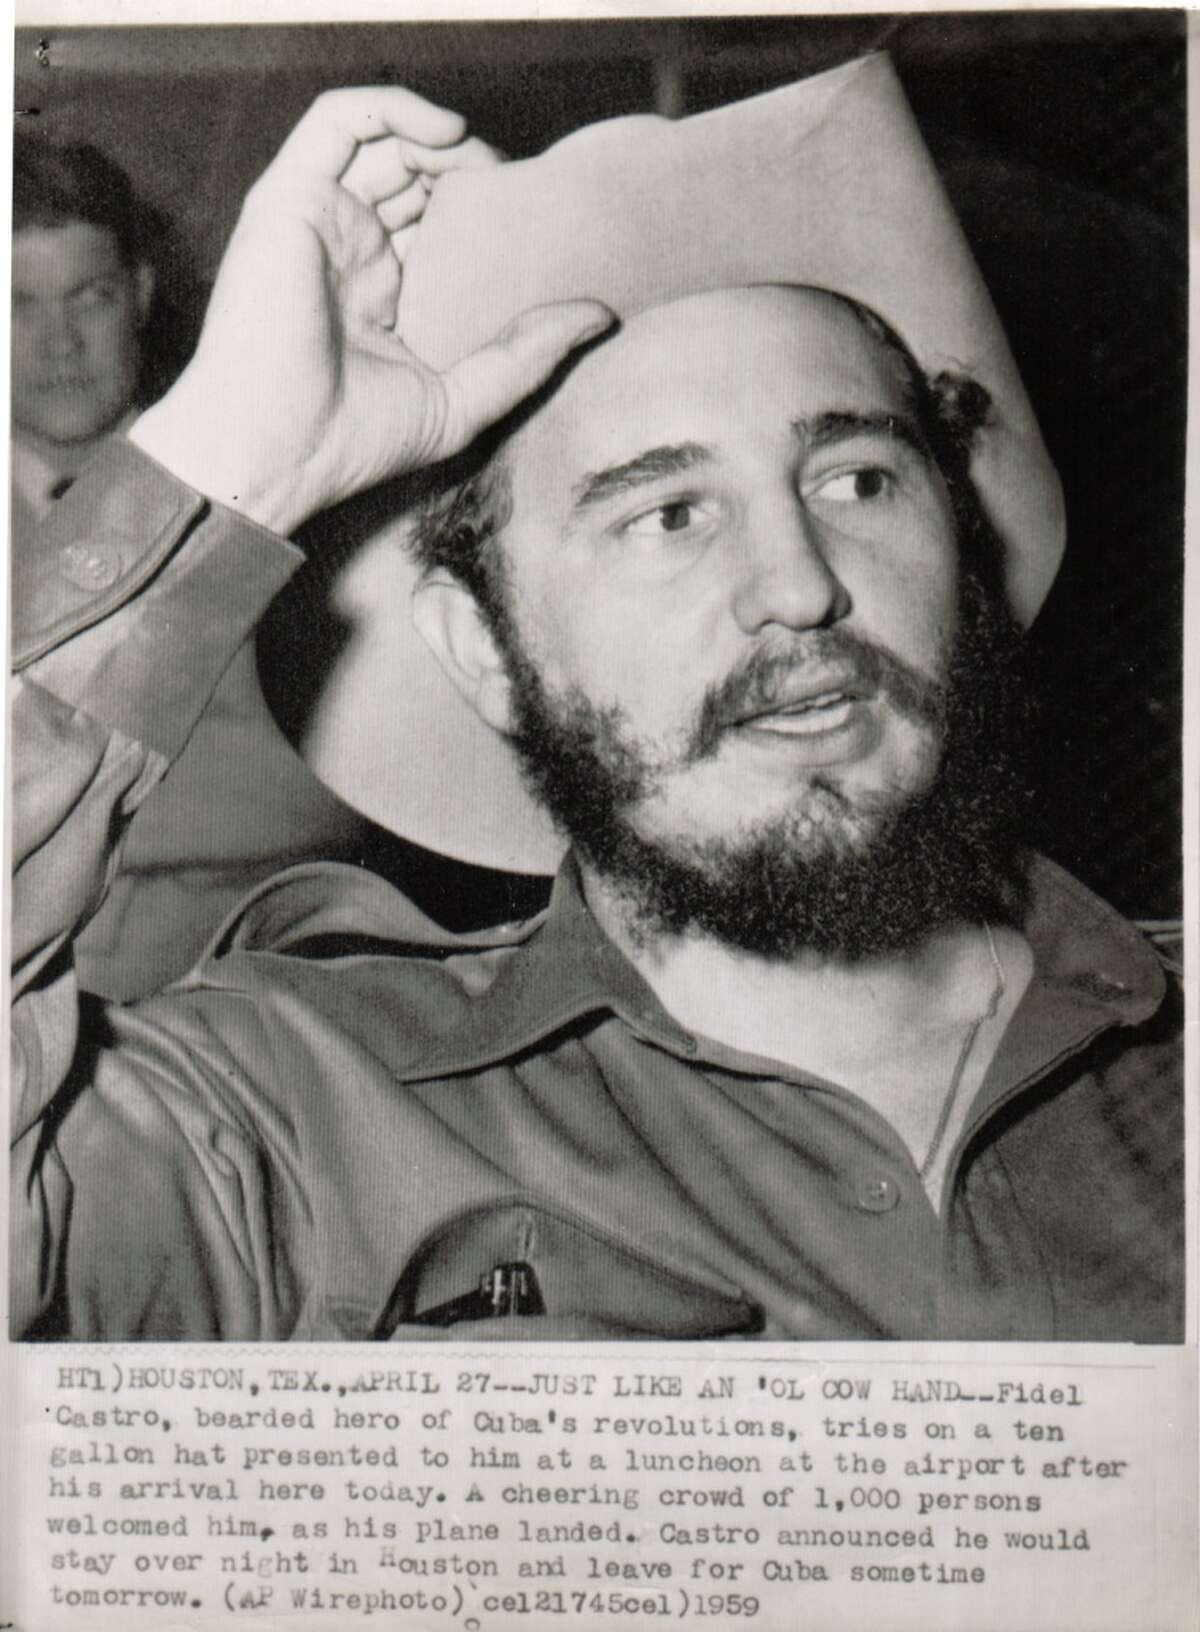 Fidel Castro, bearded hero of Cuba's revolutions, tries on a ten gallon hat presented to him at a luncheon at the airport after his arrival on April 27, 1959.